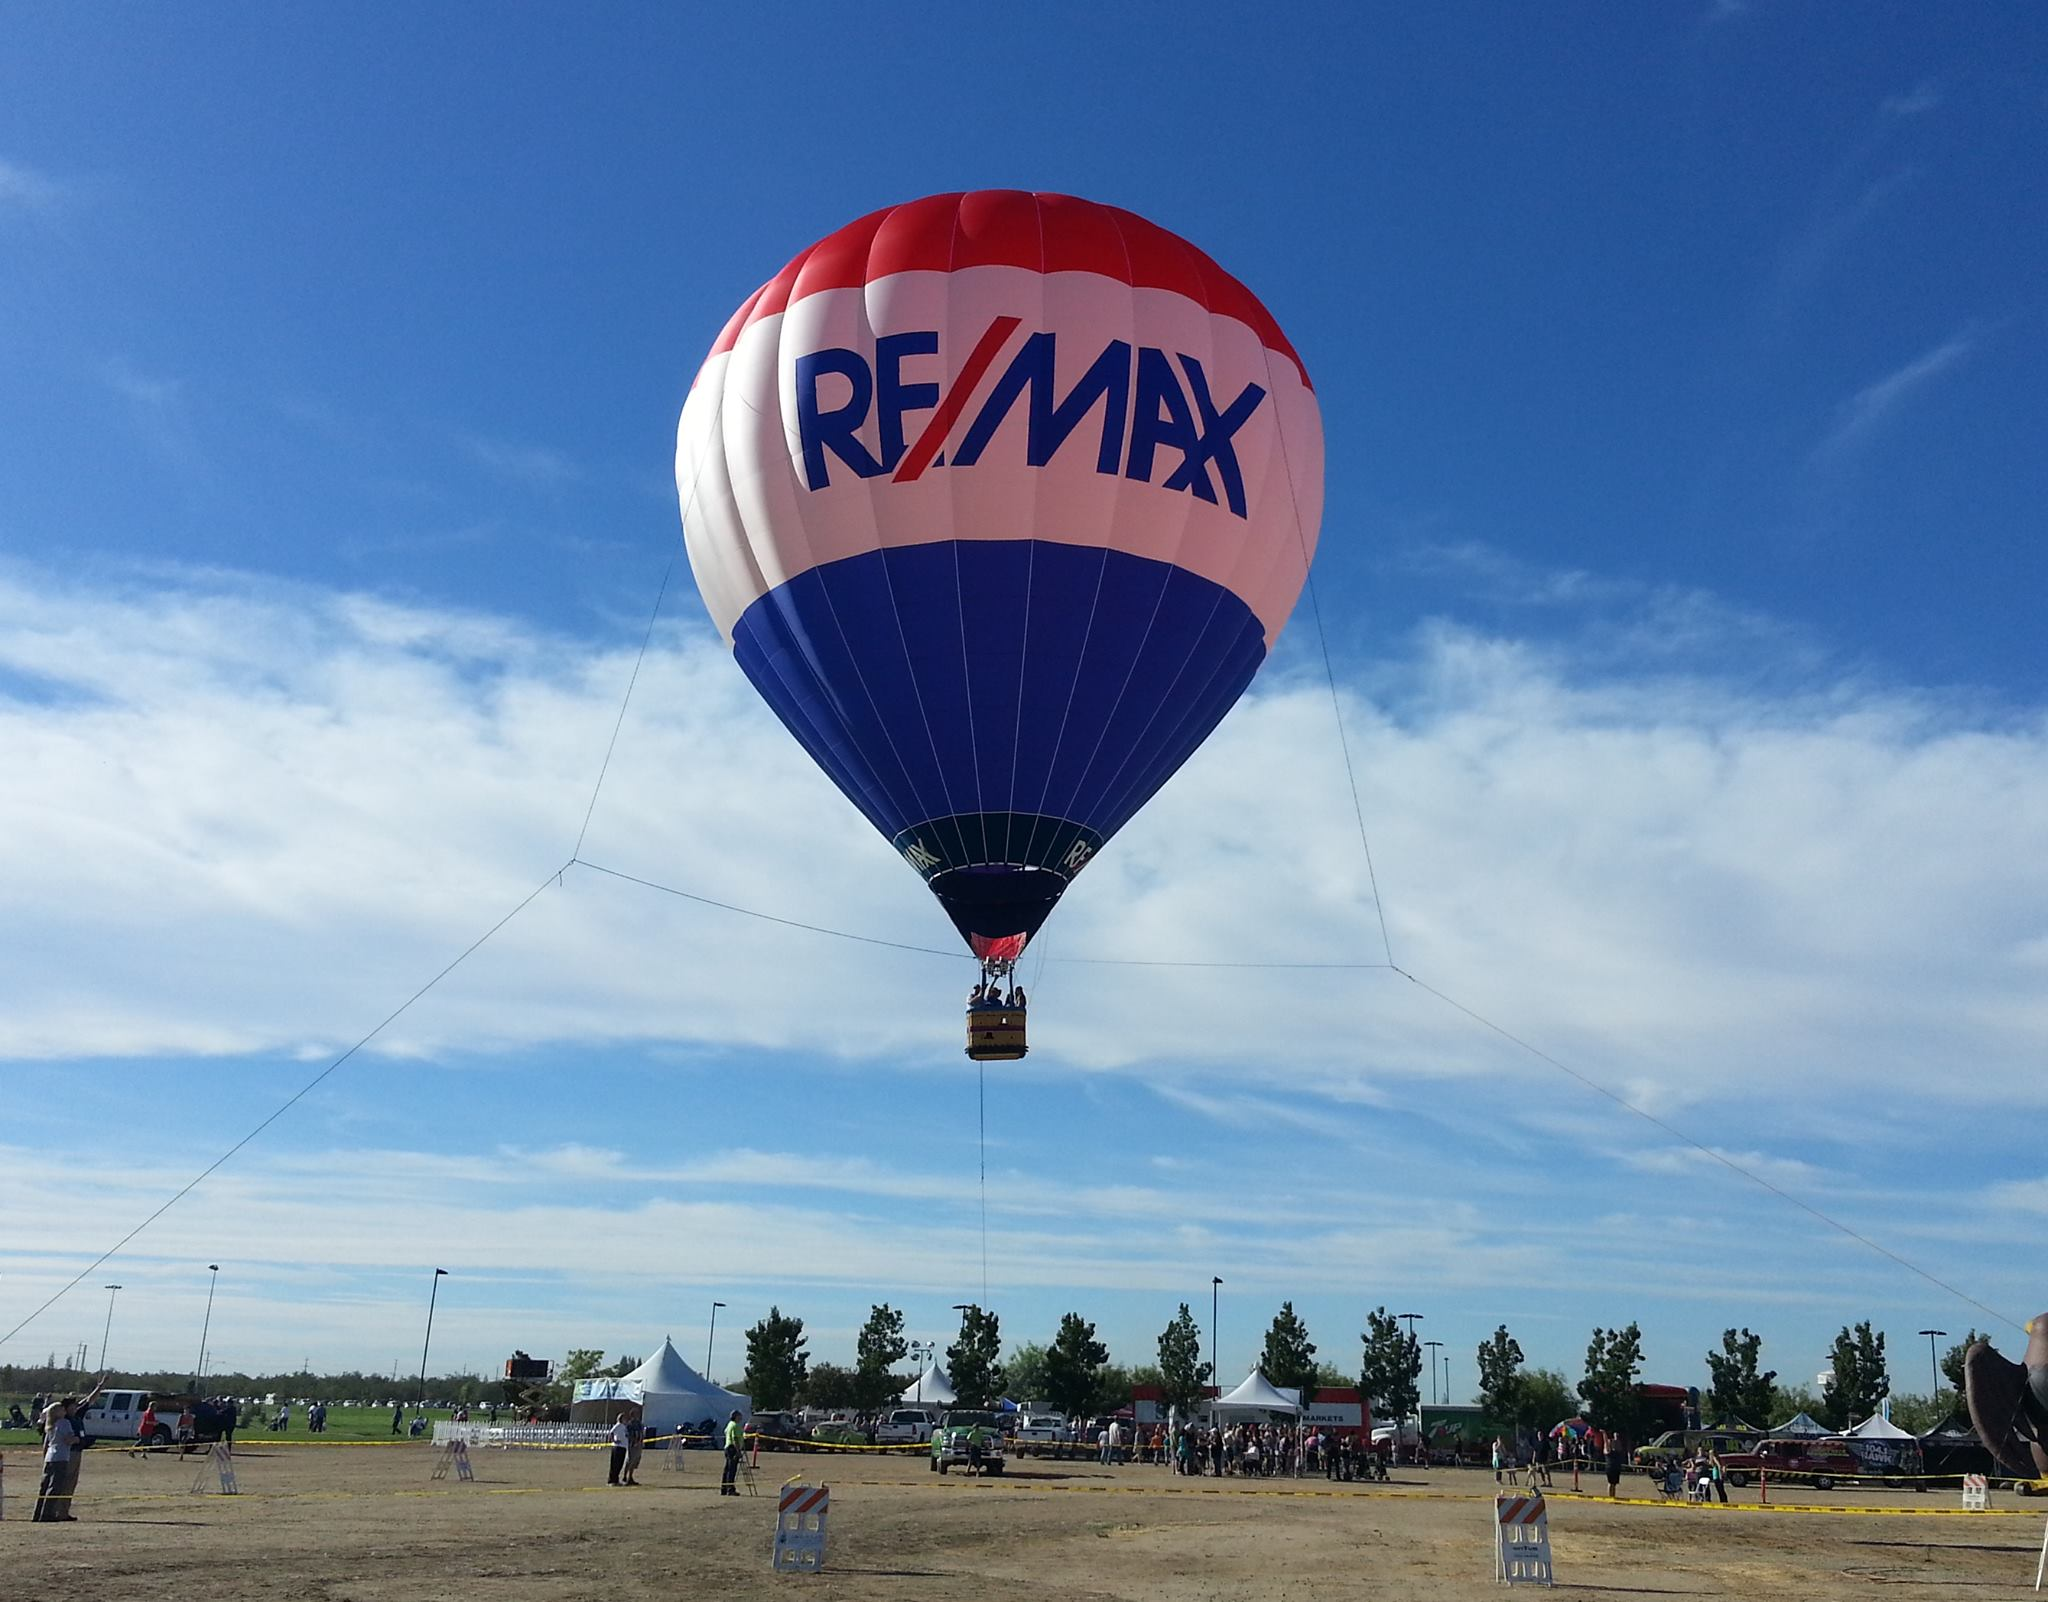 RE/MAX Balloon Tethered Rides